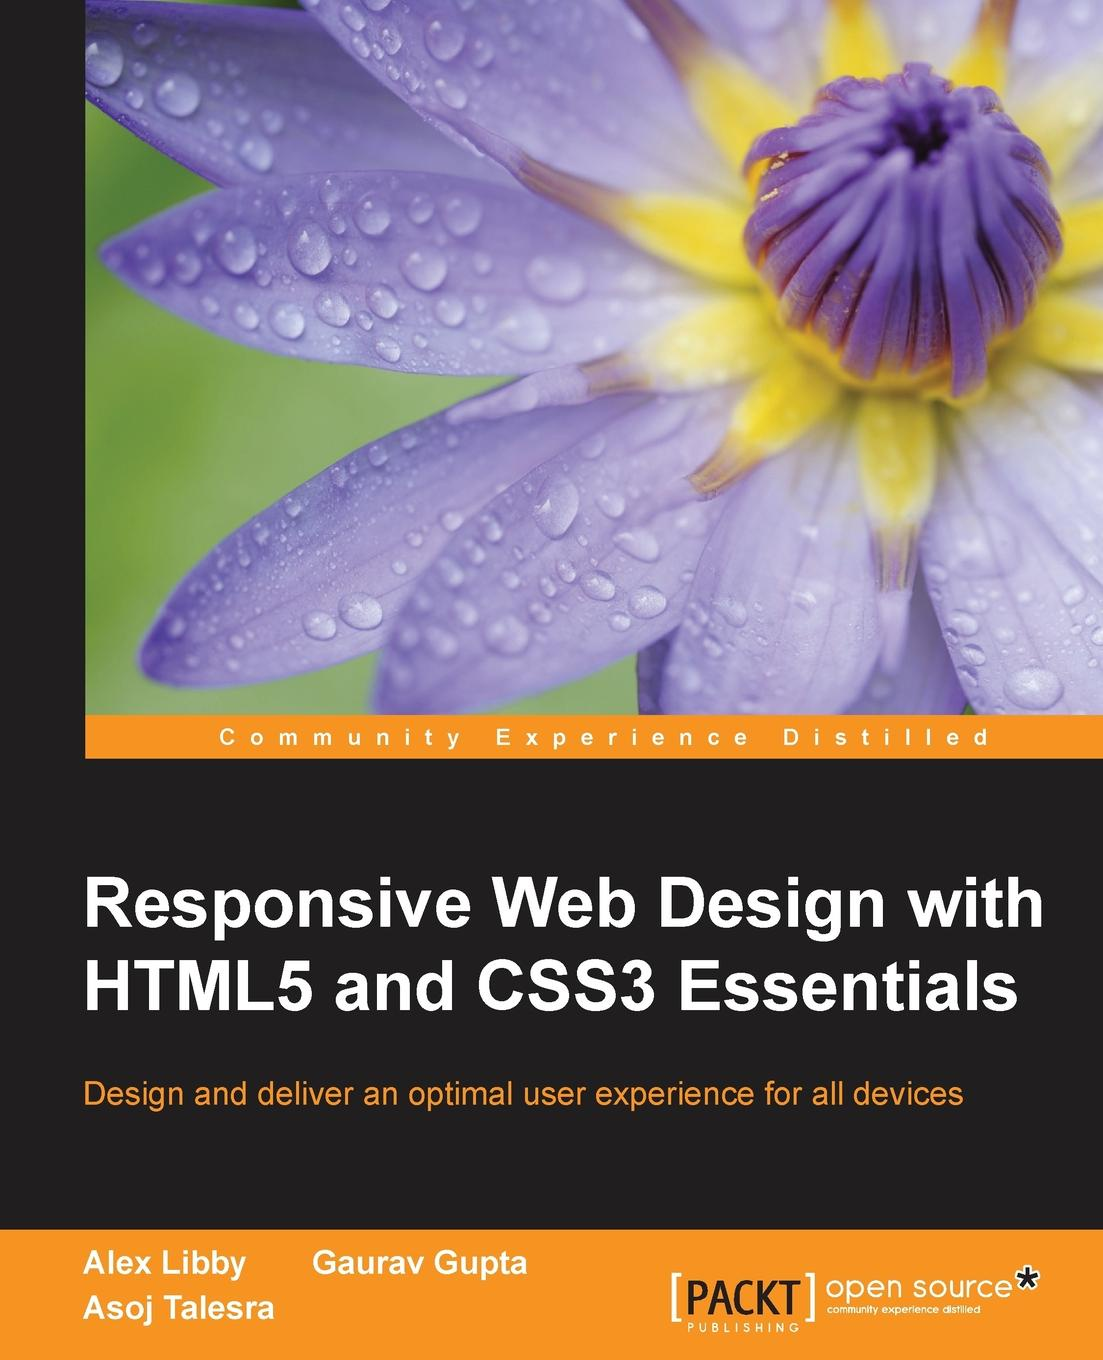 Asoj Talesra, Alex Libby Responsive Web Design with HTML5 and CSS3 Essentials